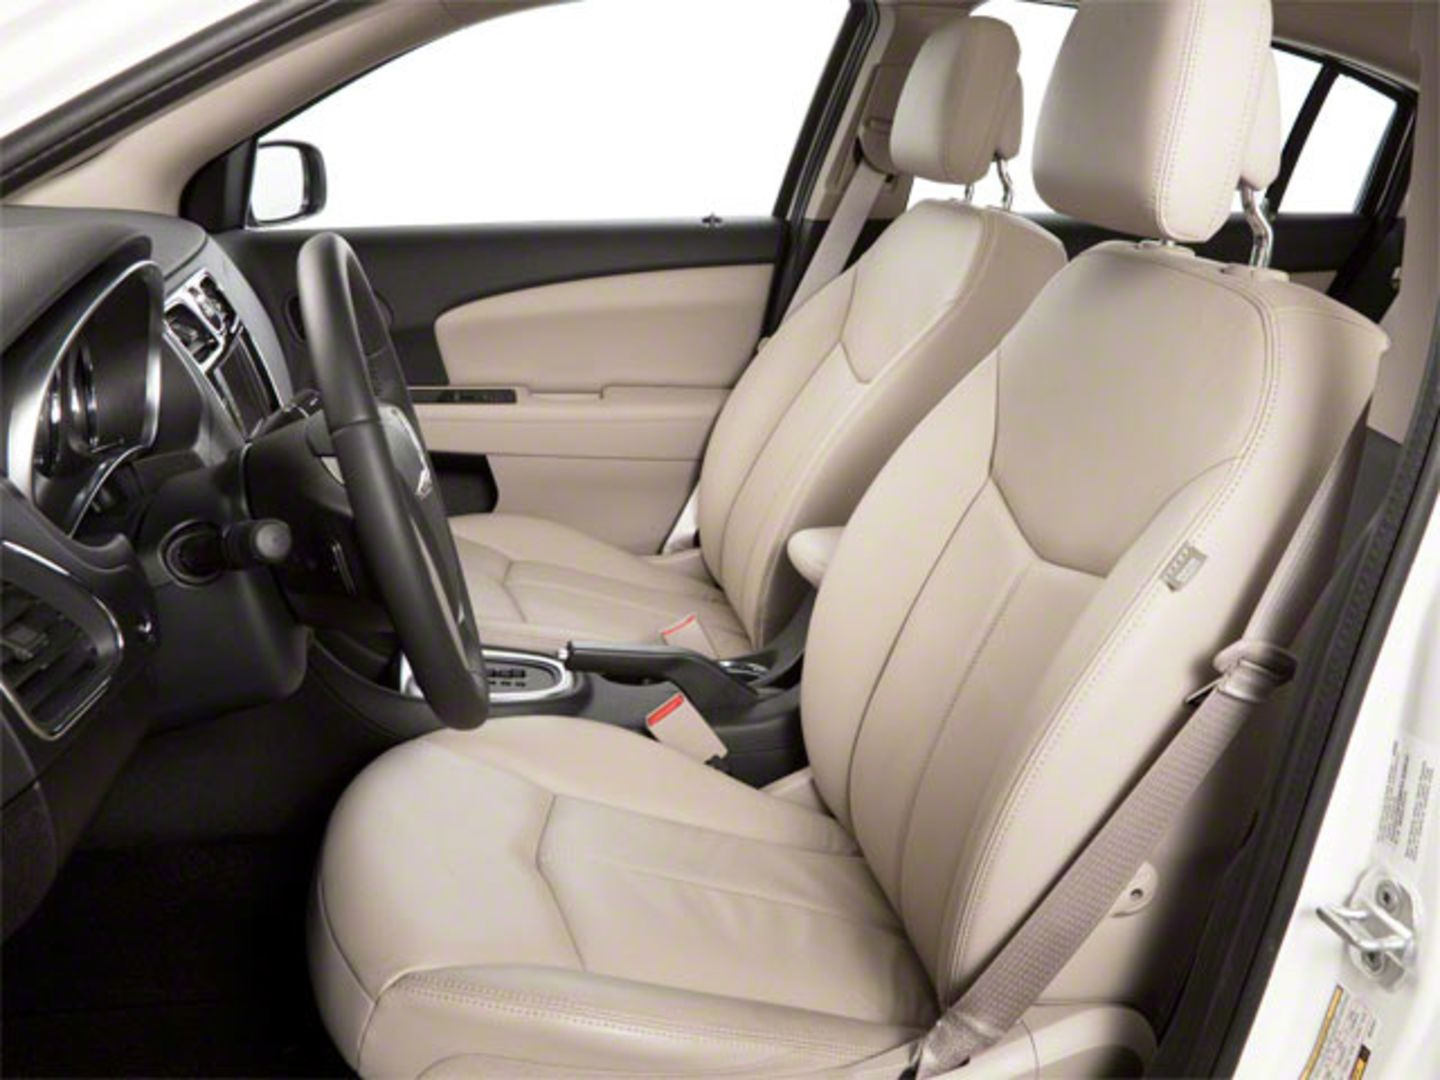 2012 Chrysler 200 Limited for sale in Toronto, Ontario